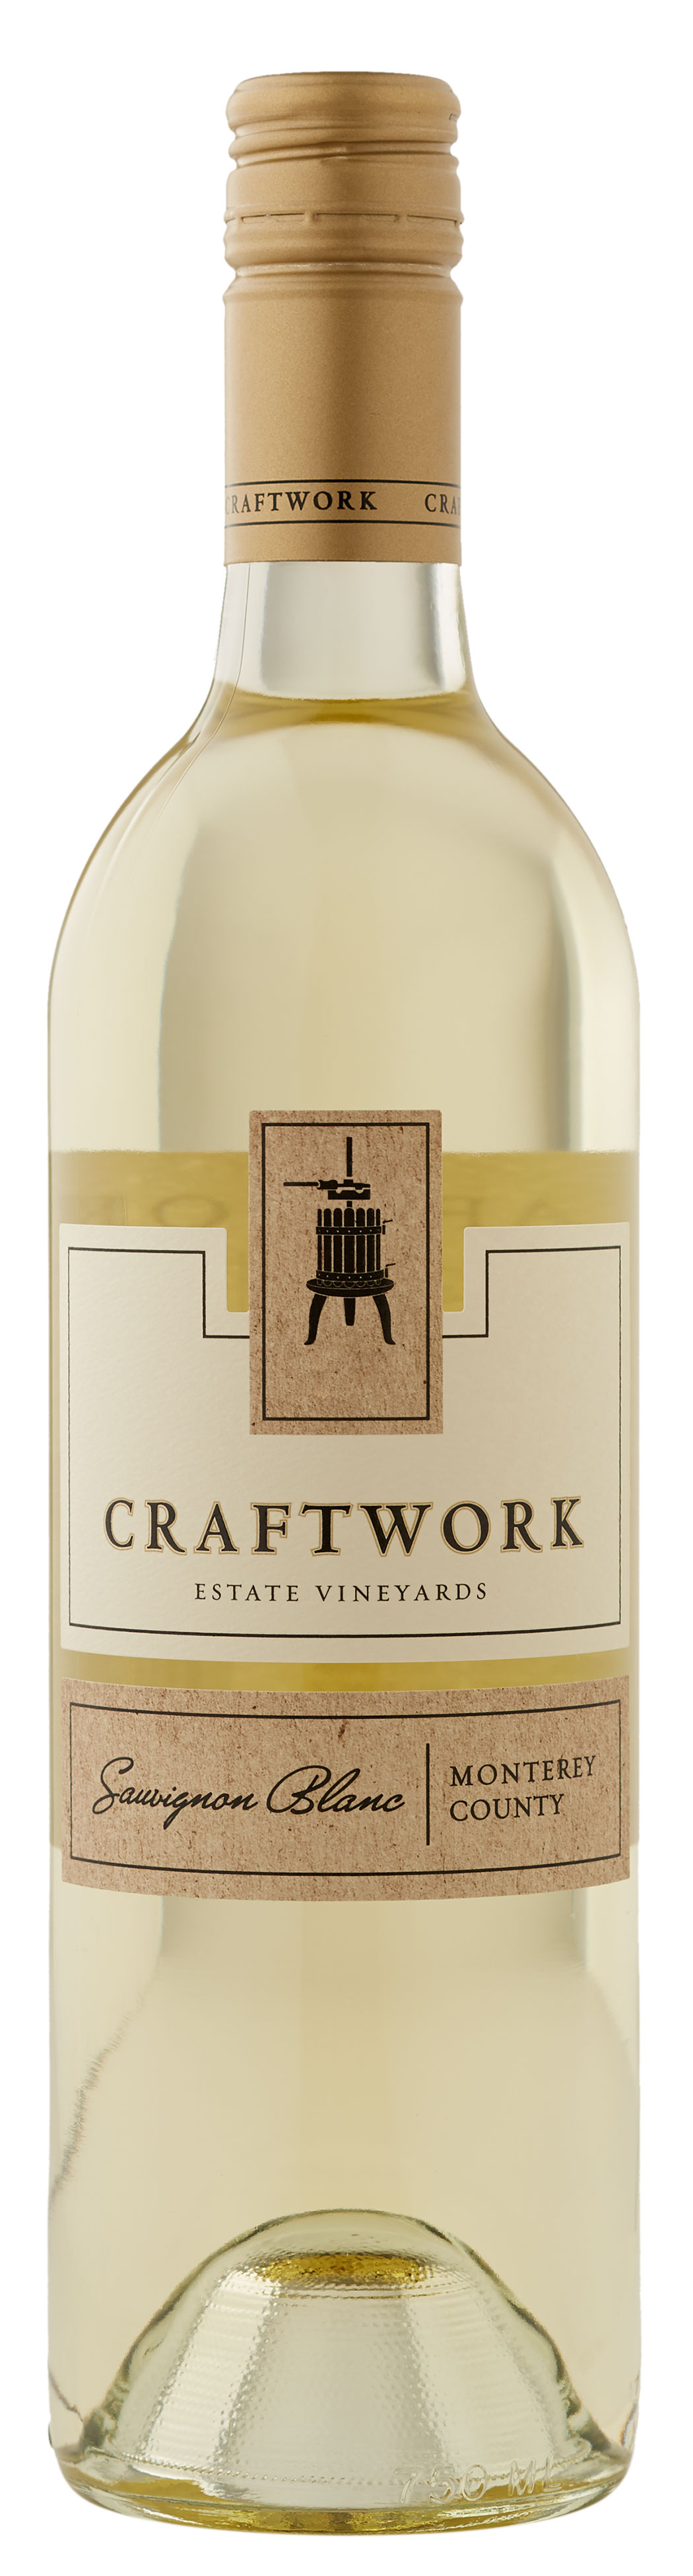 Product Image for 2020 Craftwork Sauvignon Blanc